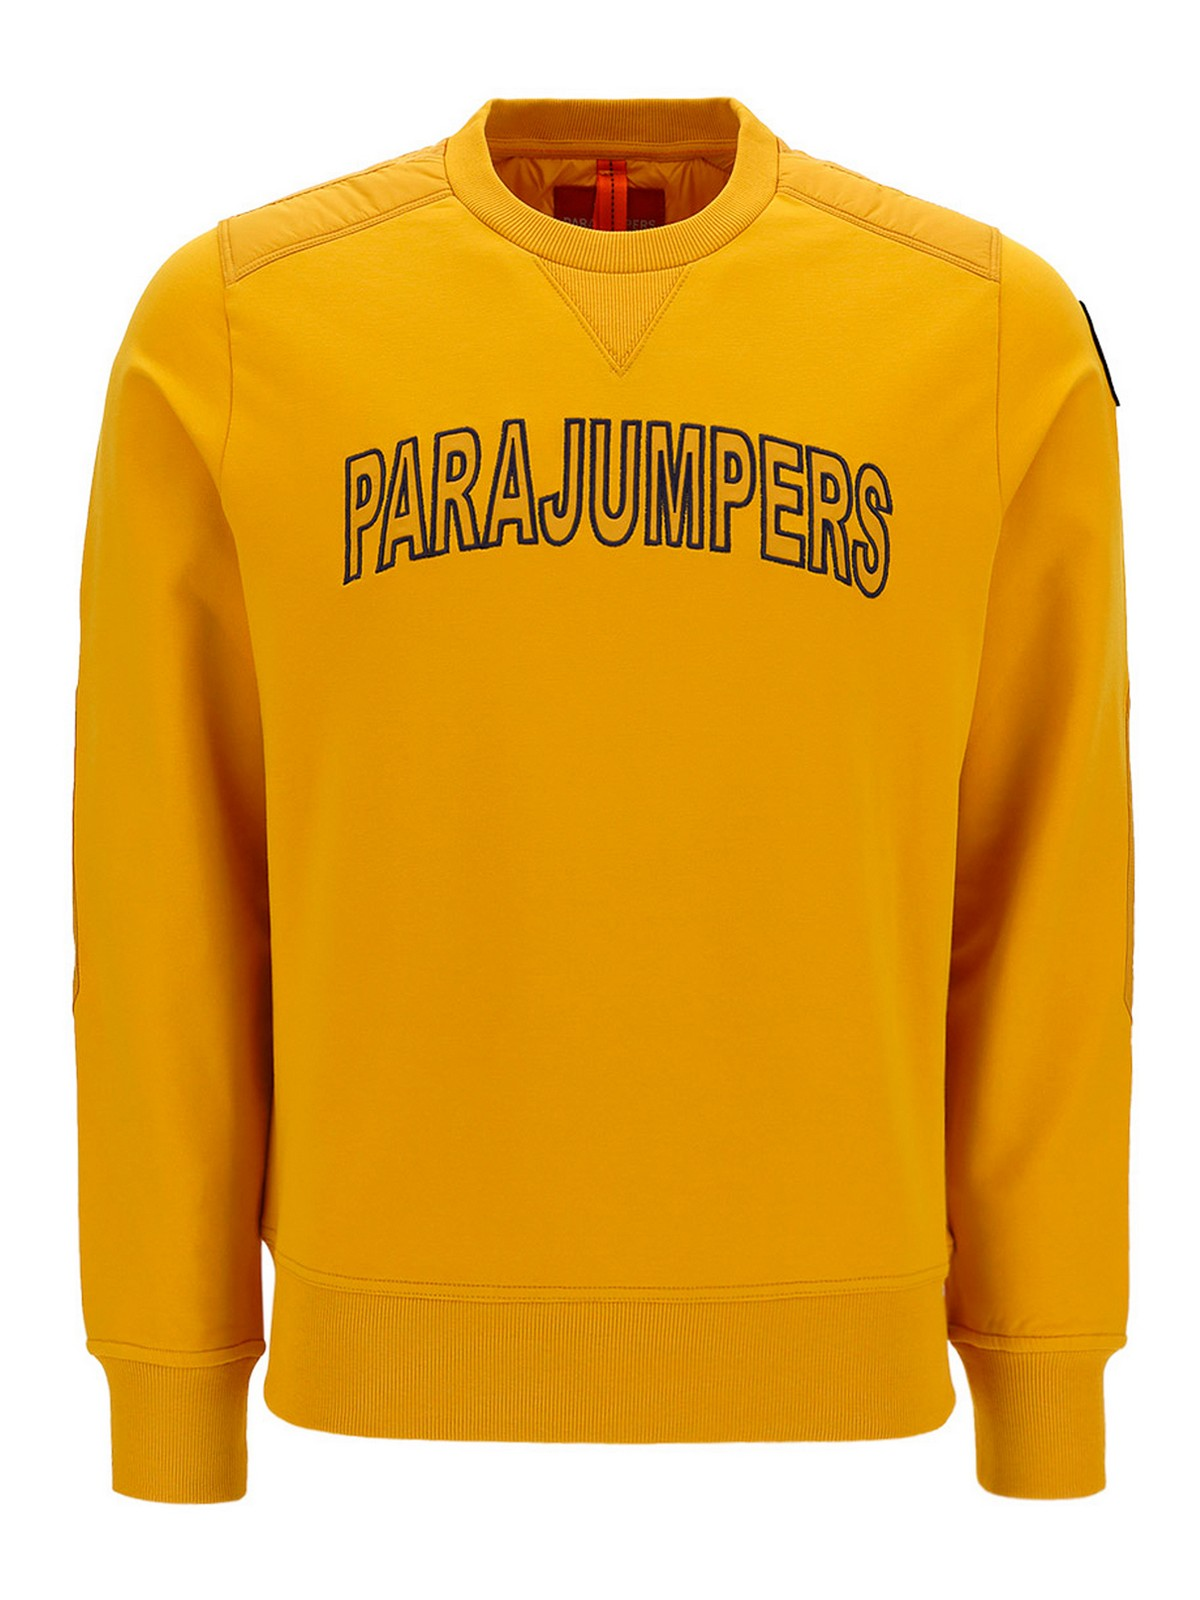 Parajumpers Cottons LOGO EMBROIDERY SWEATSHIRT